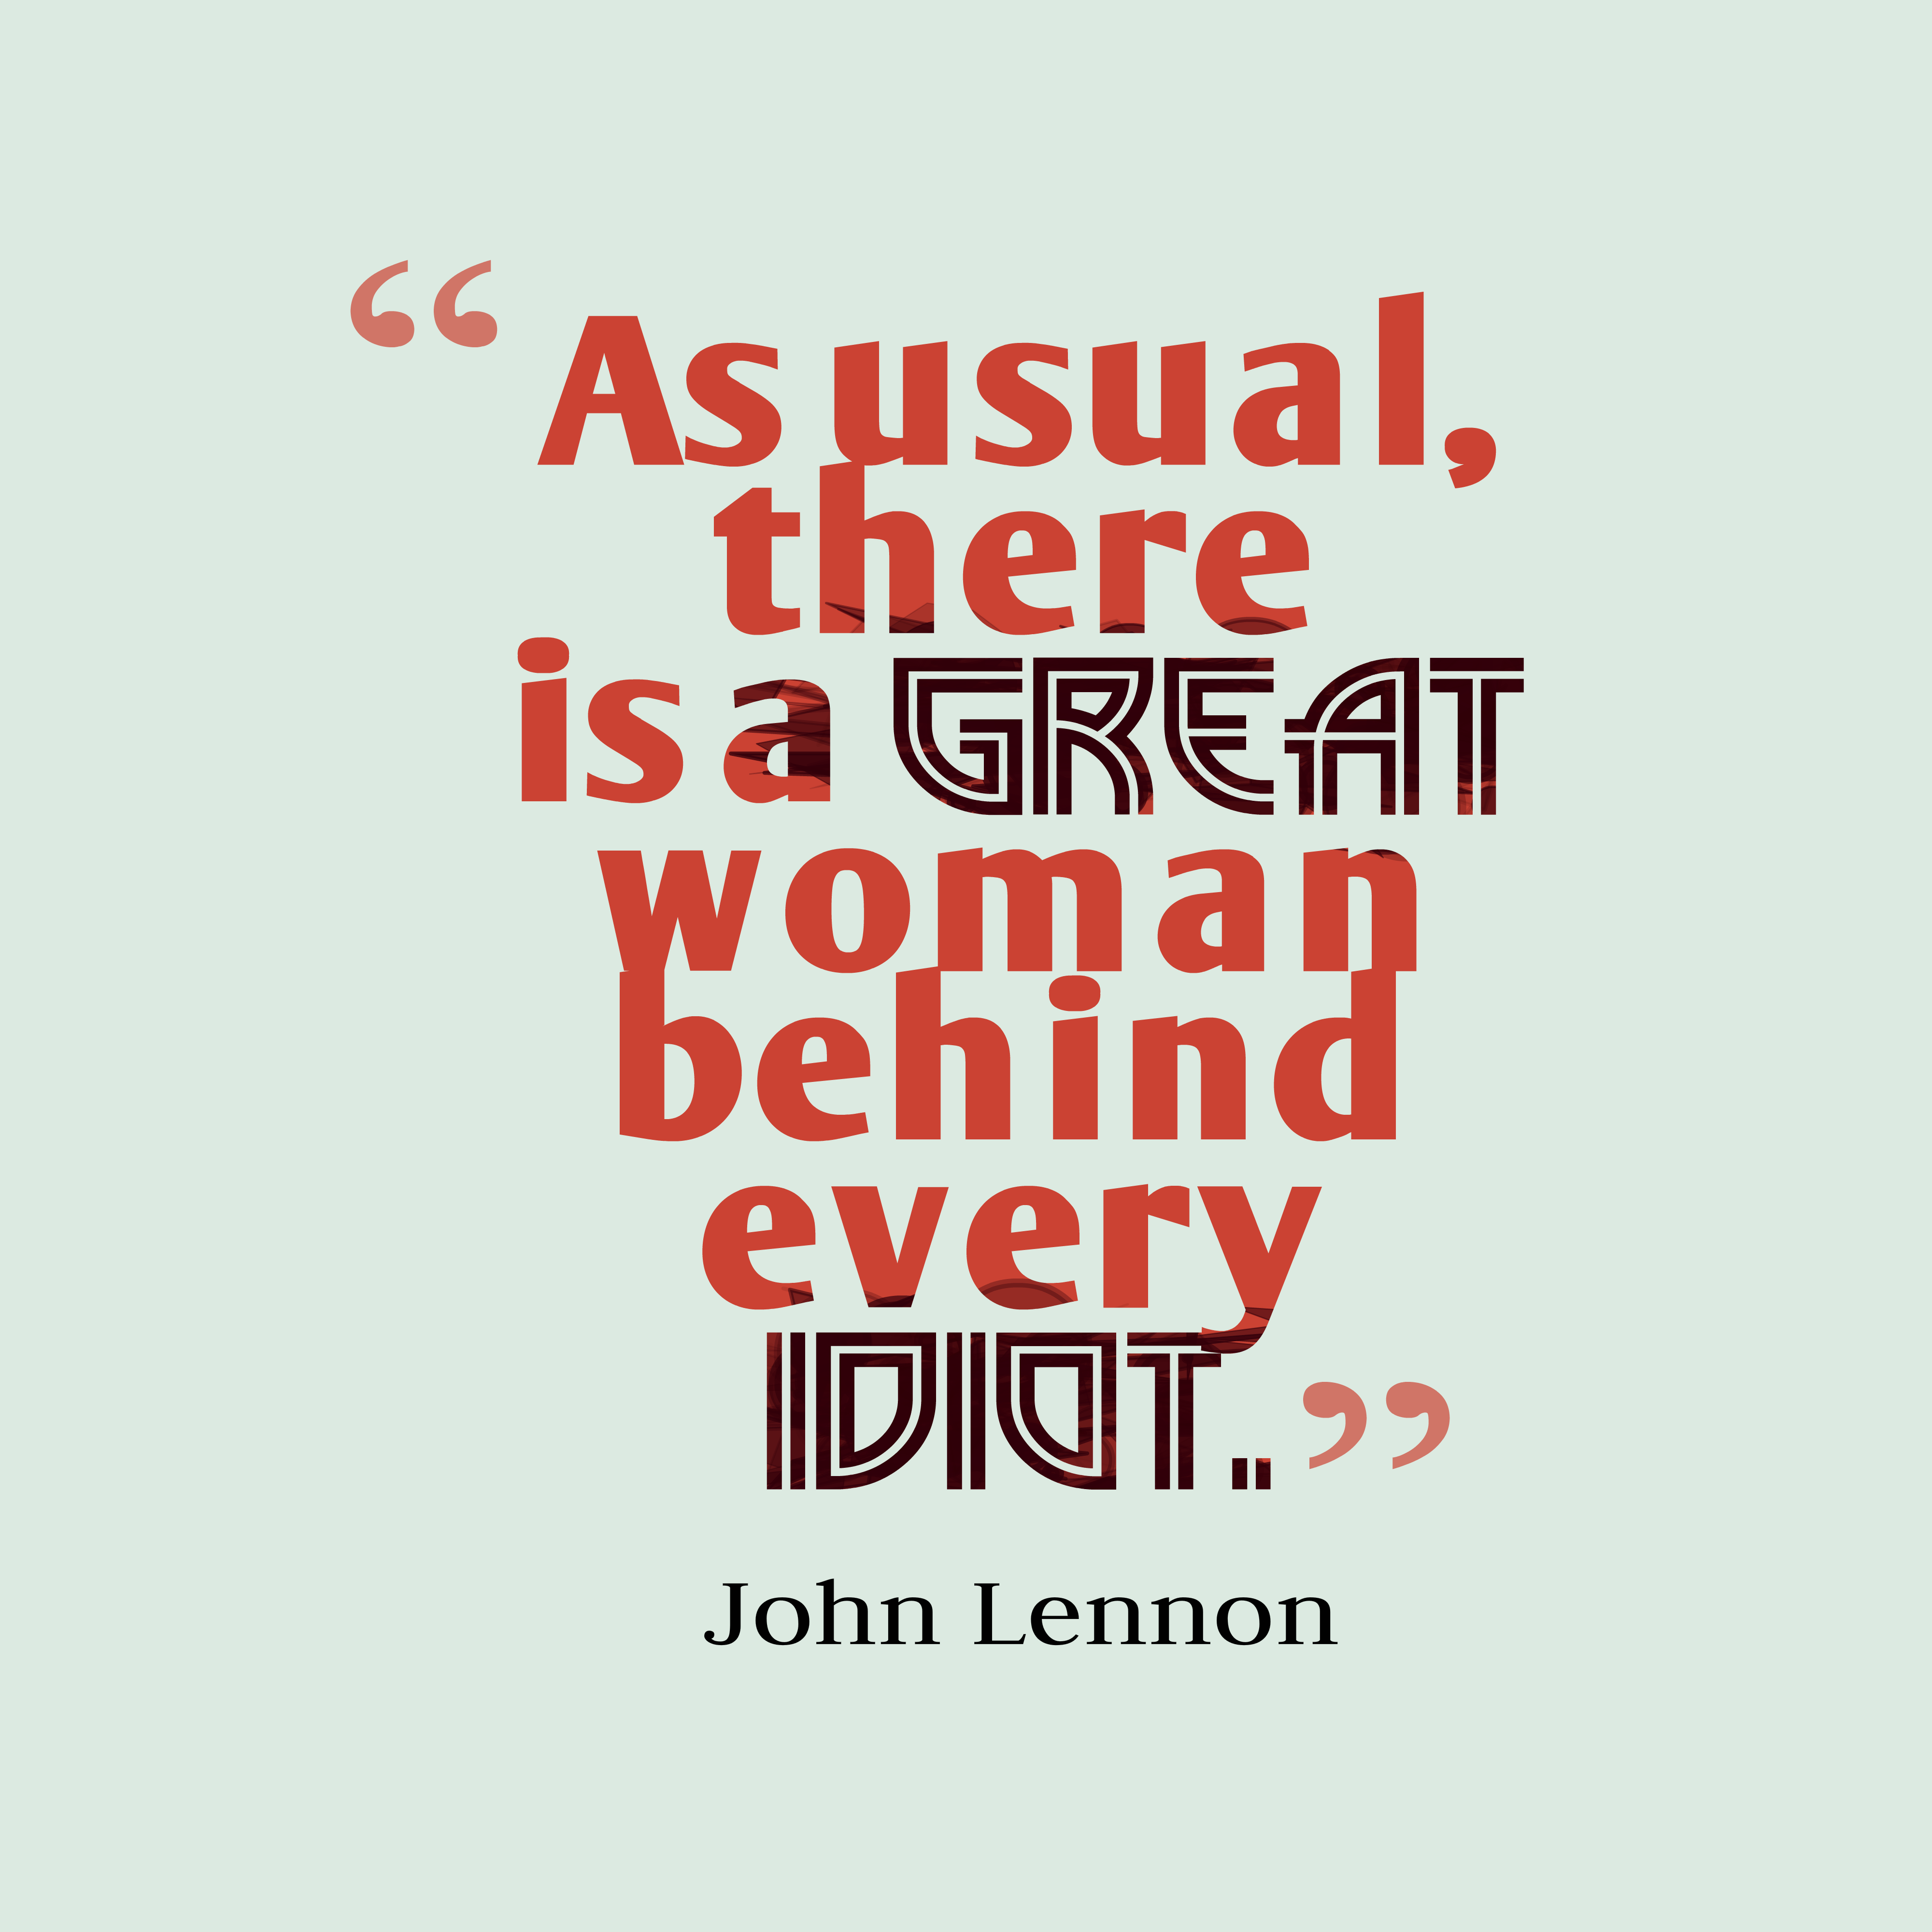 Quotes image of As usual, there is a great woman behind every idiot.